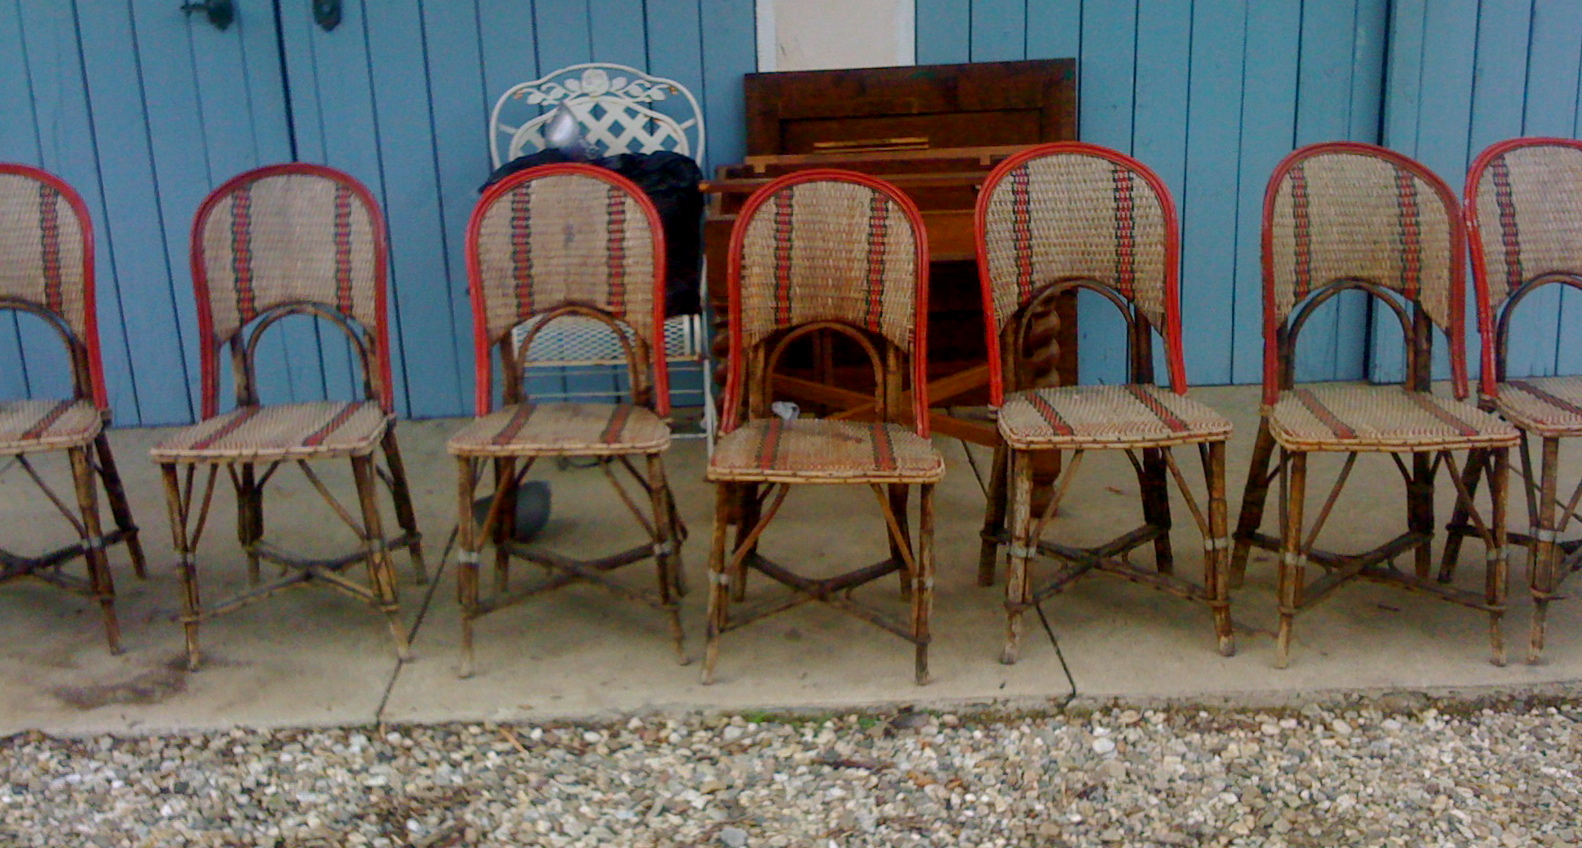 The Set Of Chairs In My Yard